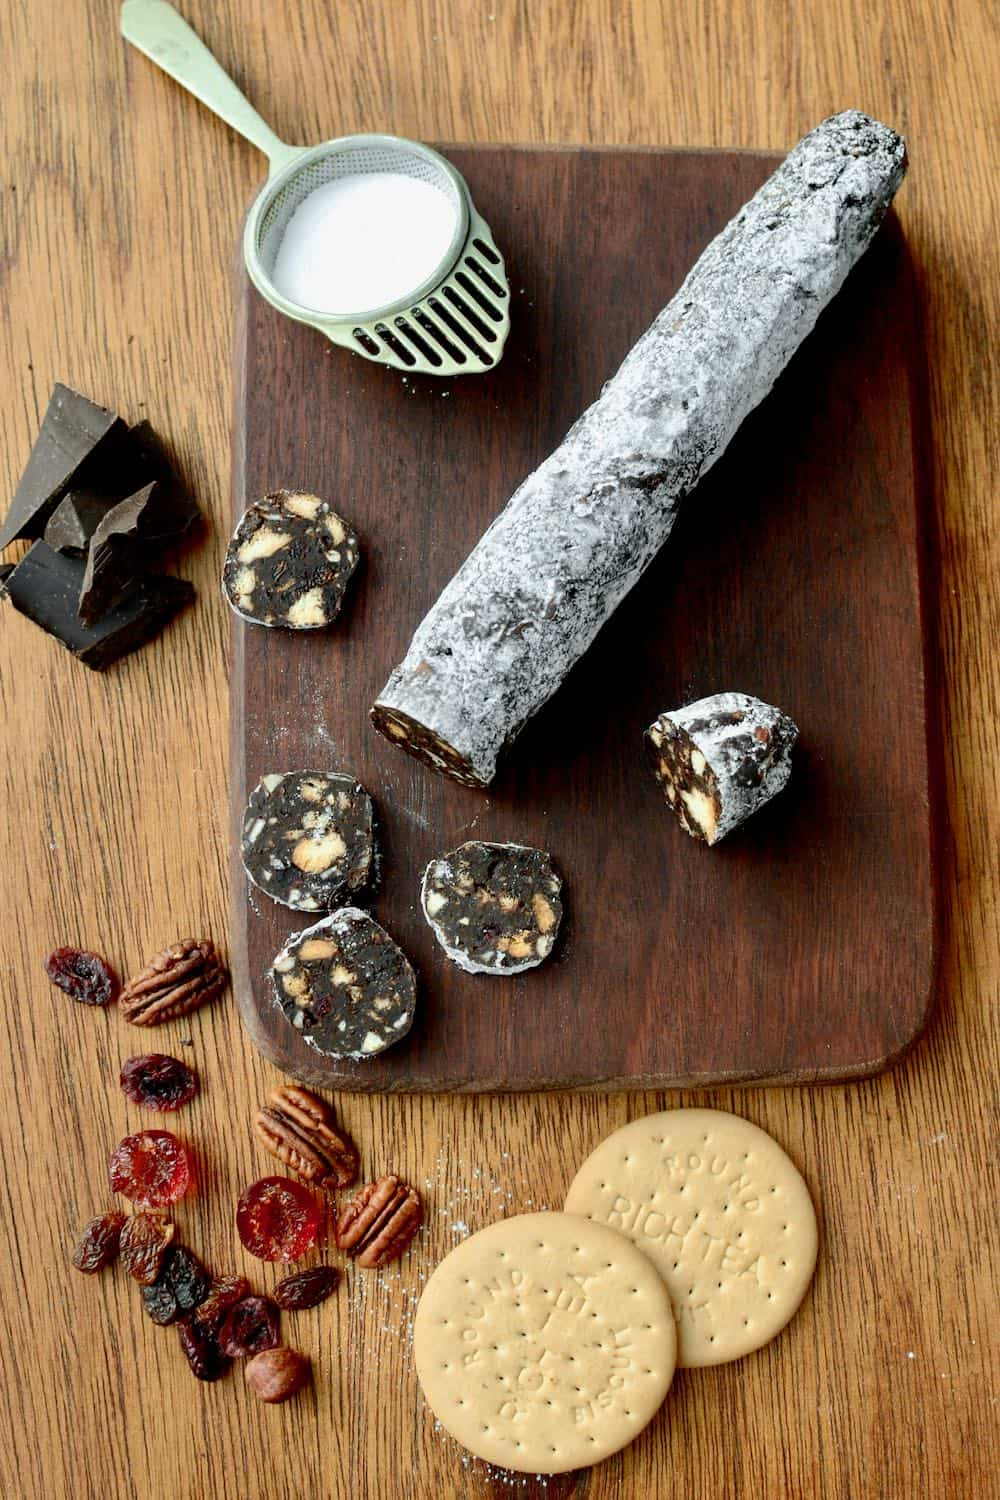 A vegan chocolate salami on a board, surrounded by its ingredients - chocolate, fruit, nuts and biscuits.